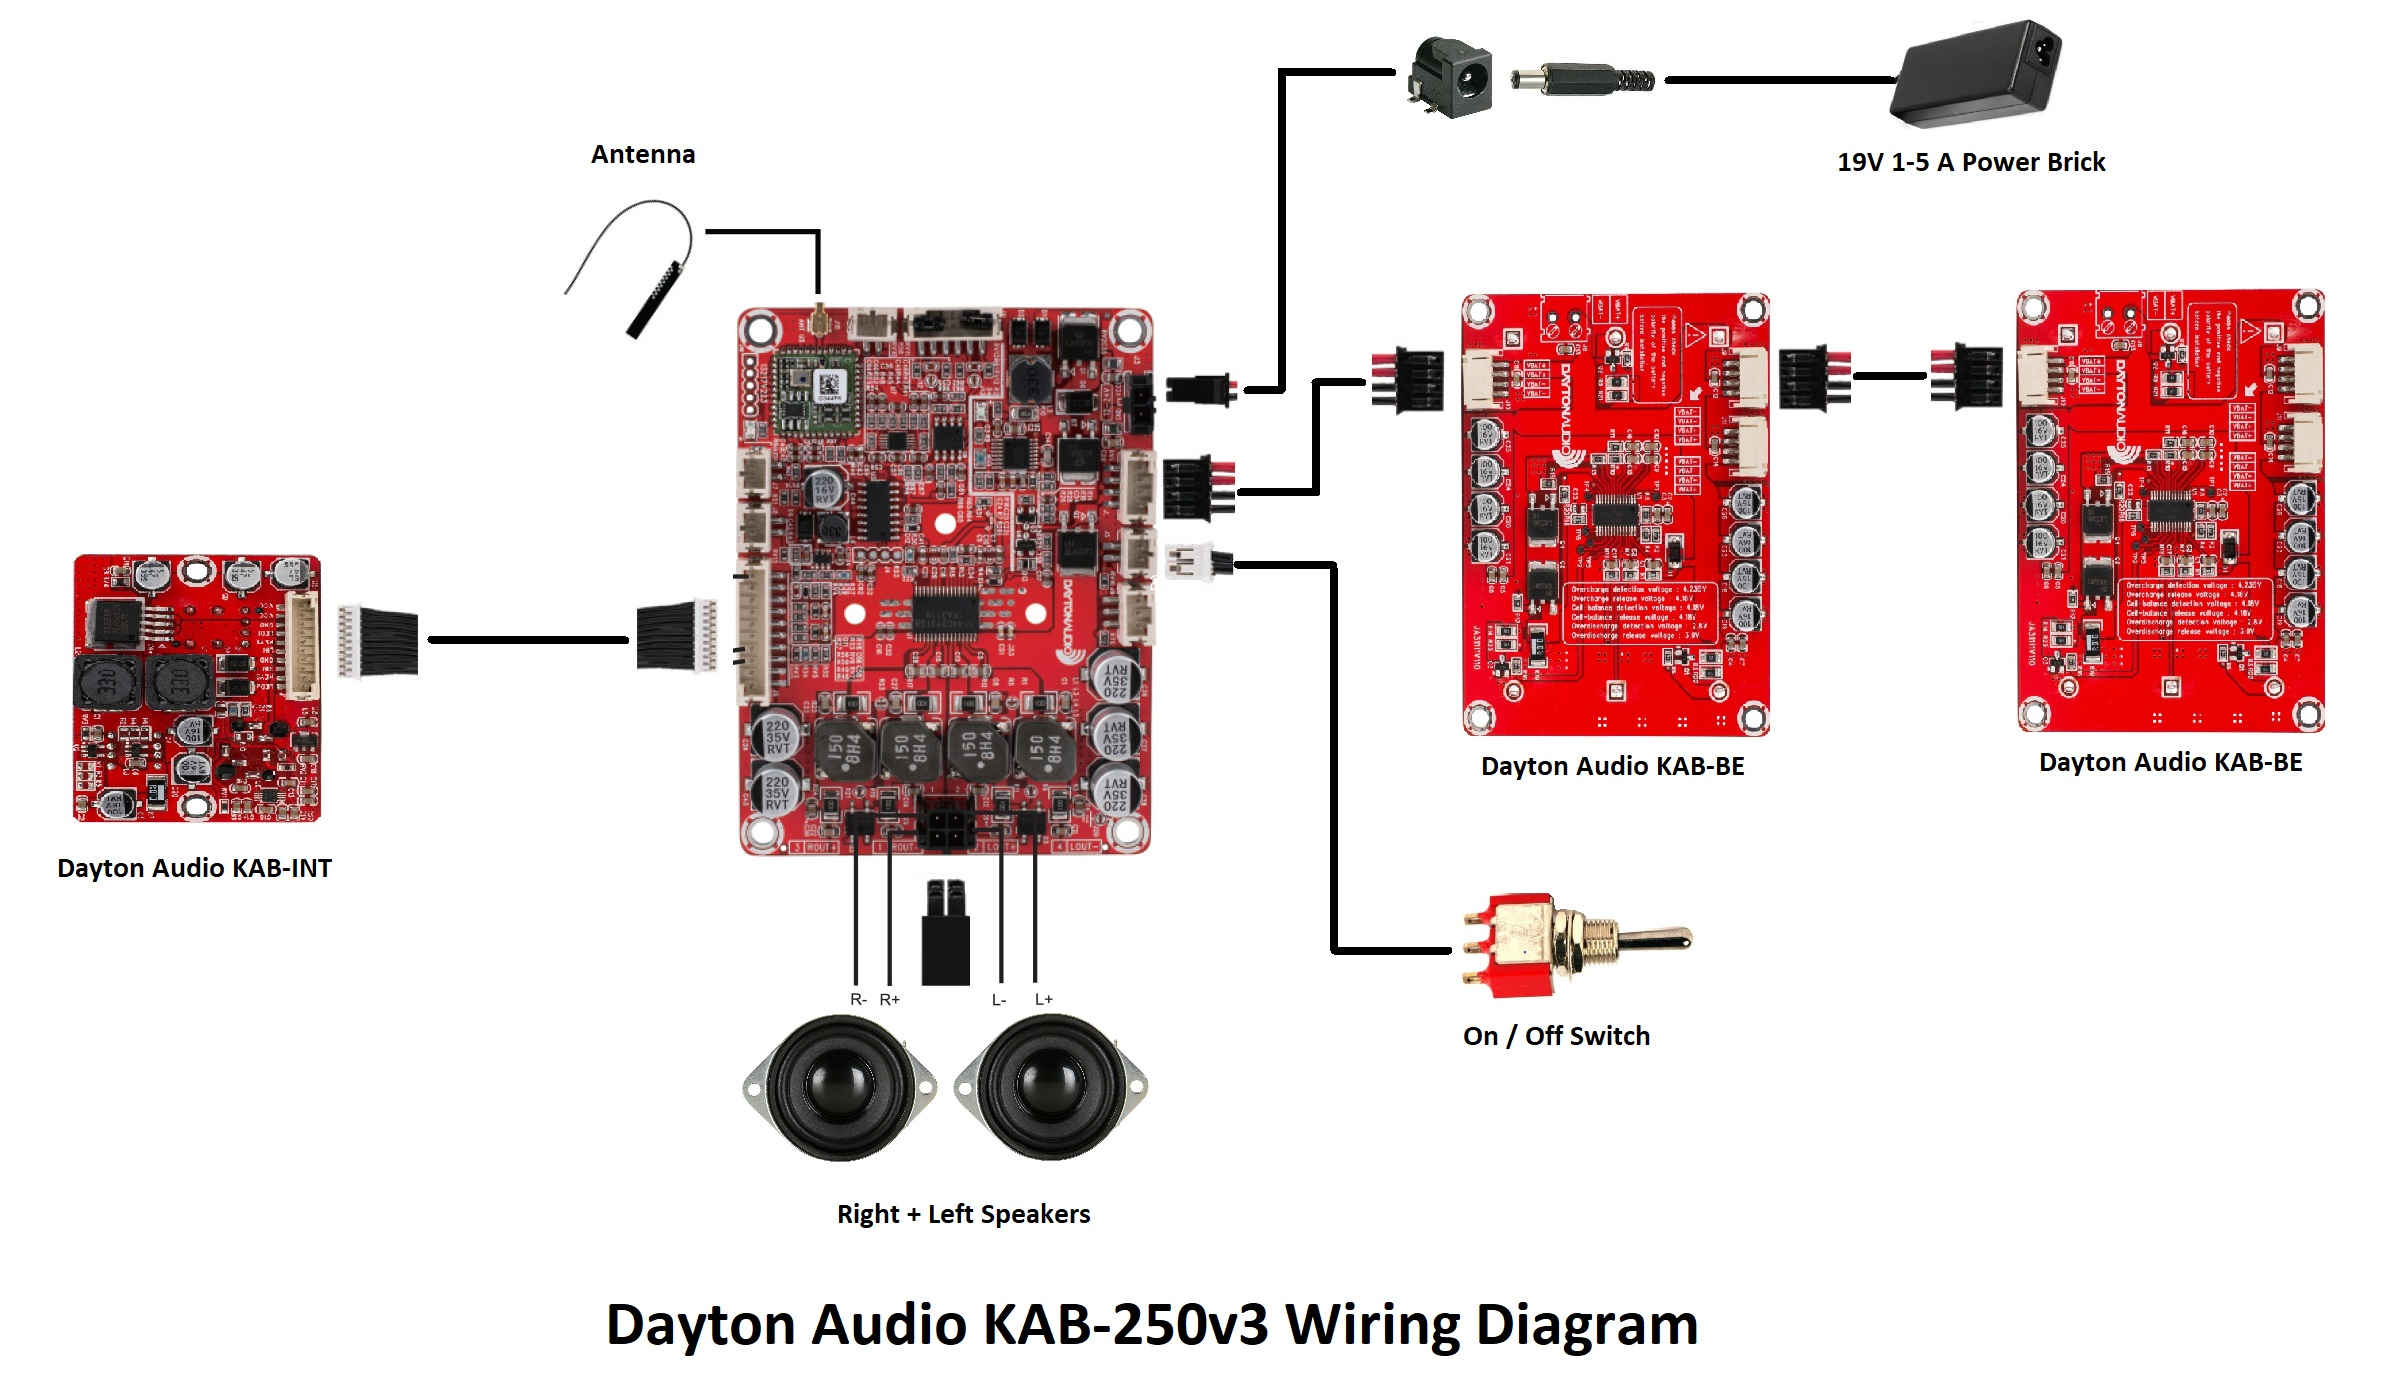 amplifier module wiring diagram wiring diagram data todaydayton audio kab 250v3 review mini bluetooth amp board amplifier module wiring diagram